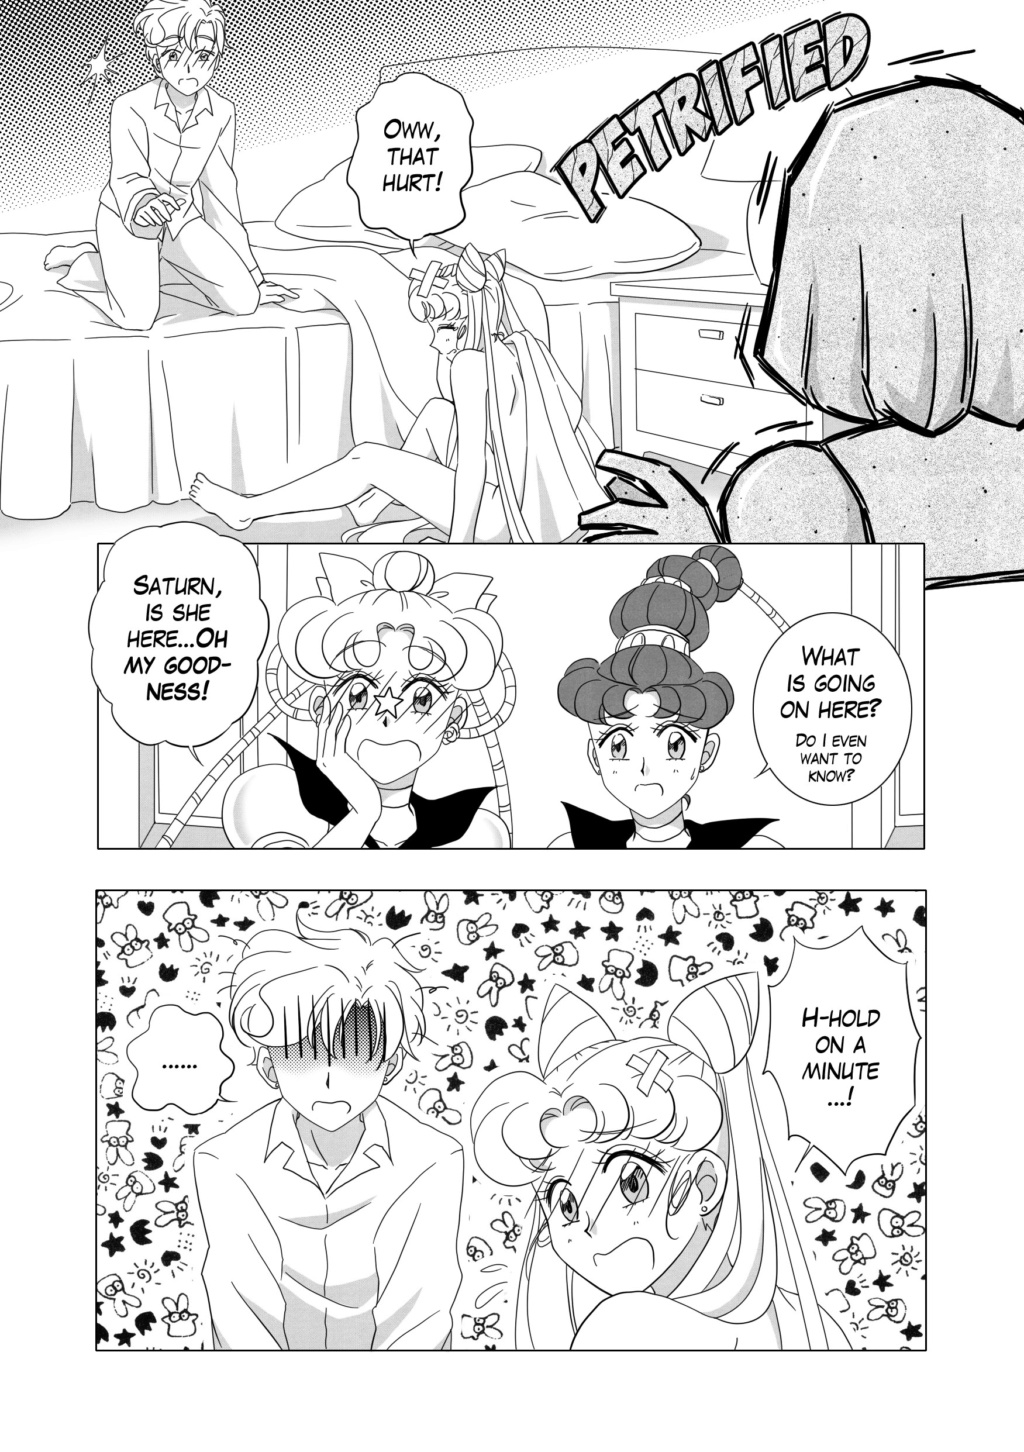 [F] My 30th century Chibi-Usa x Helios doujinshi project: UPDATED 11-25-18 - Page 19 Sbs_pg44